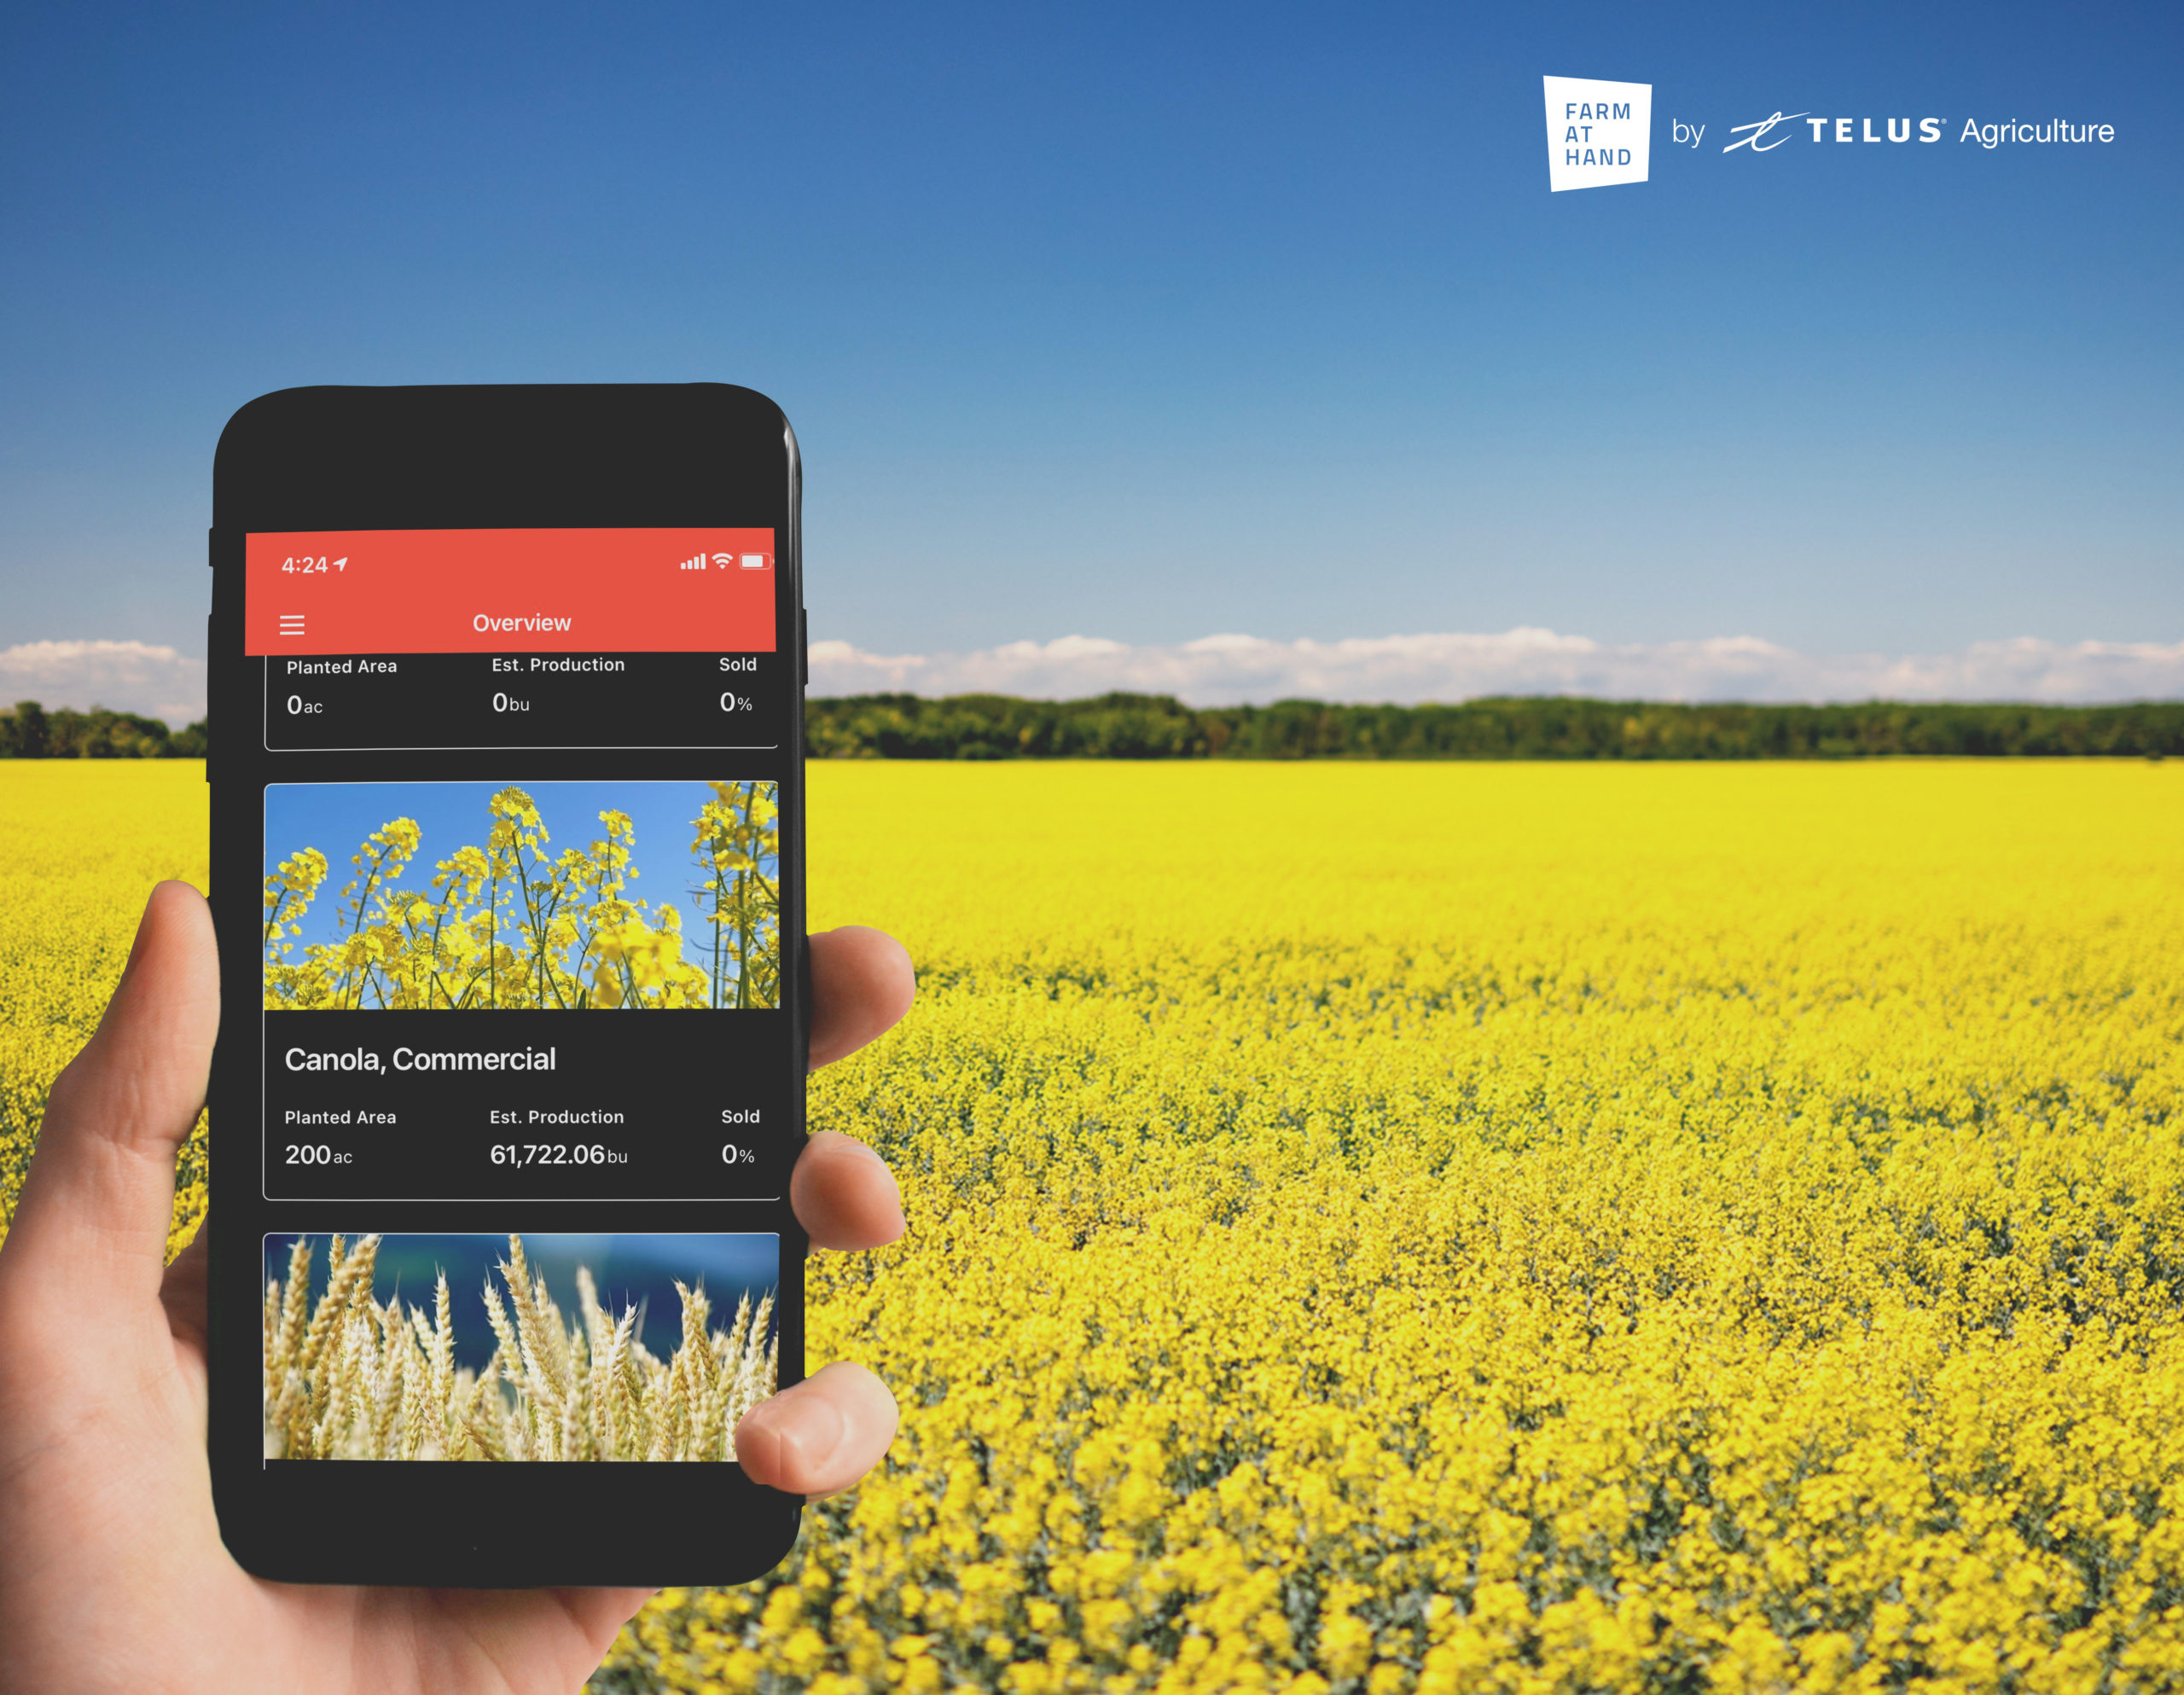 farm at hand app with crop planner in front of a canola field